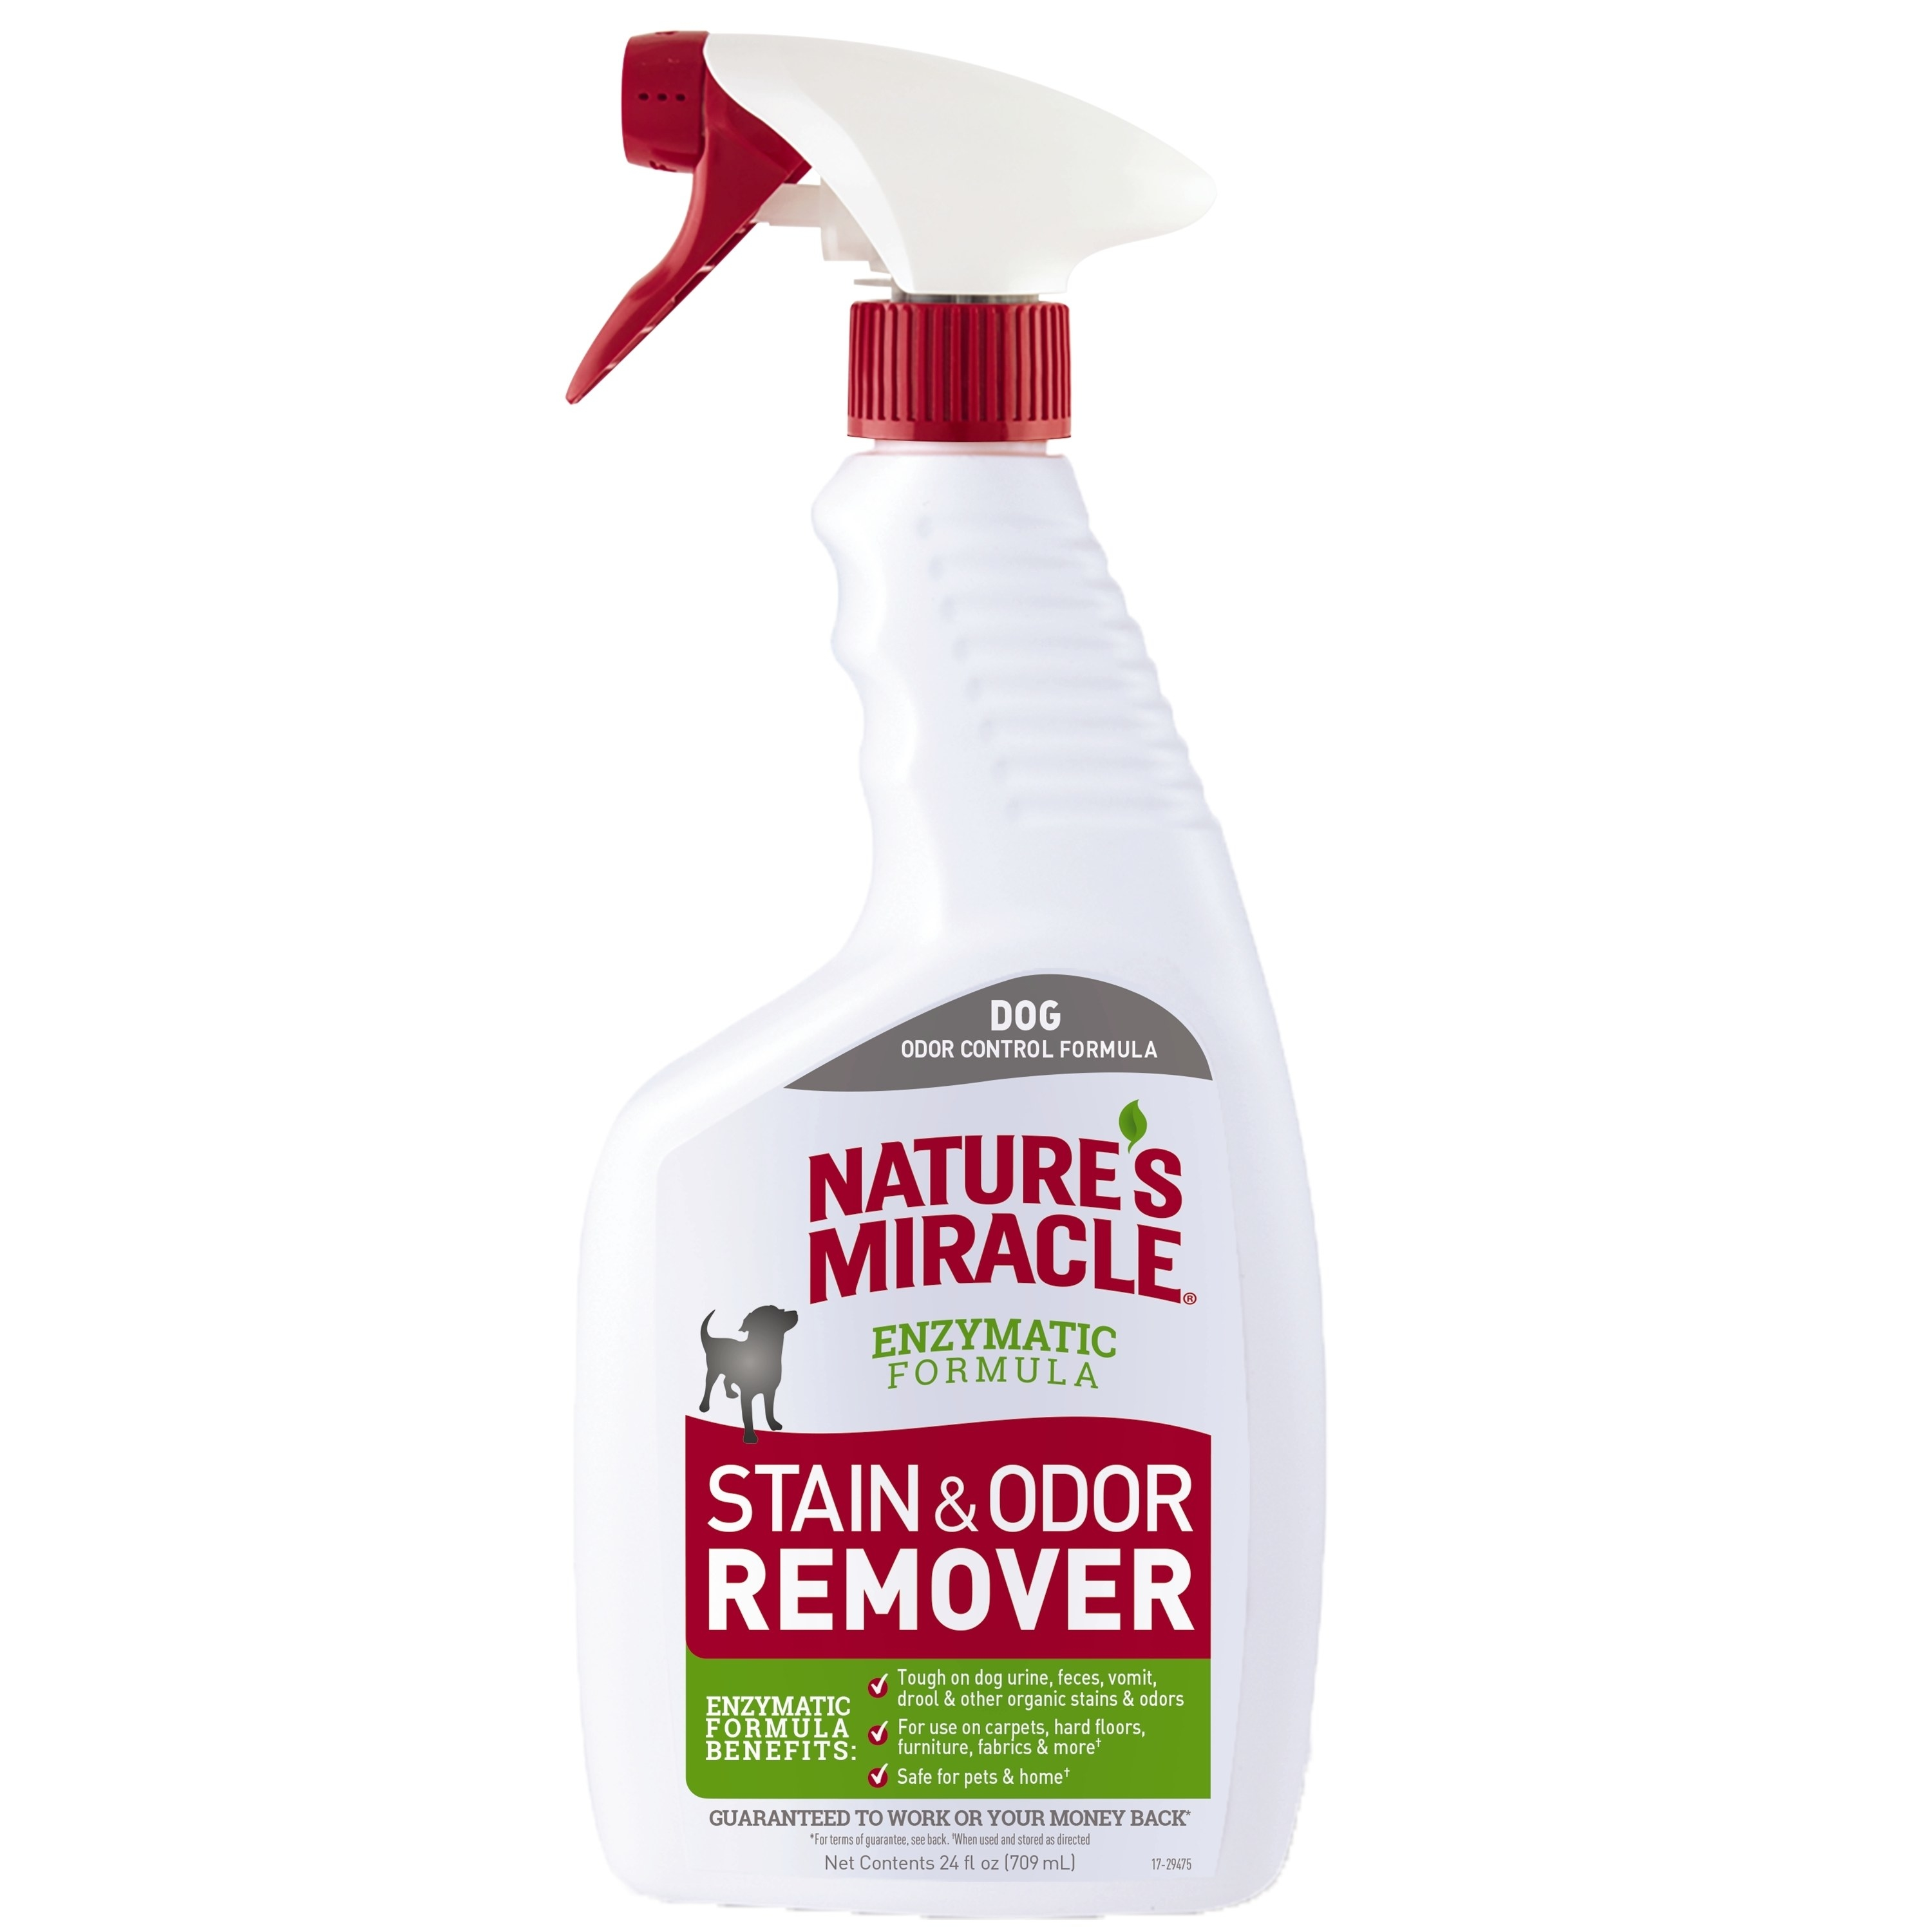 A white bottle of Nature's Miracle stain and odor remover